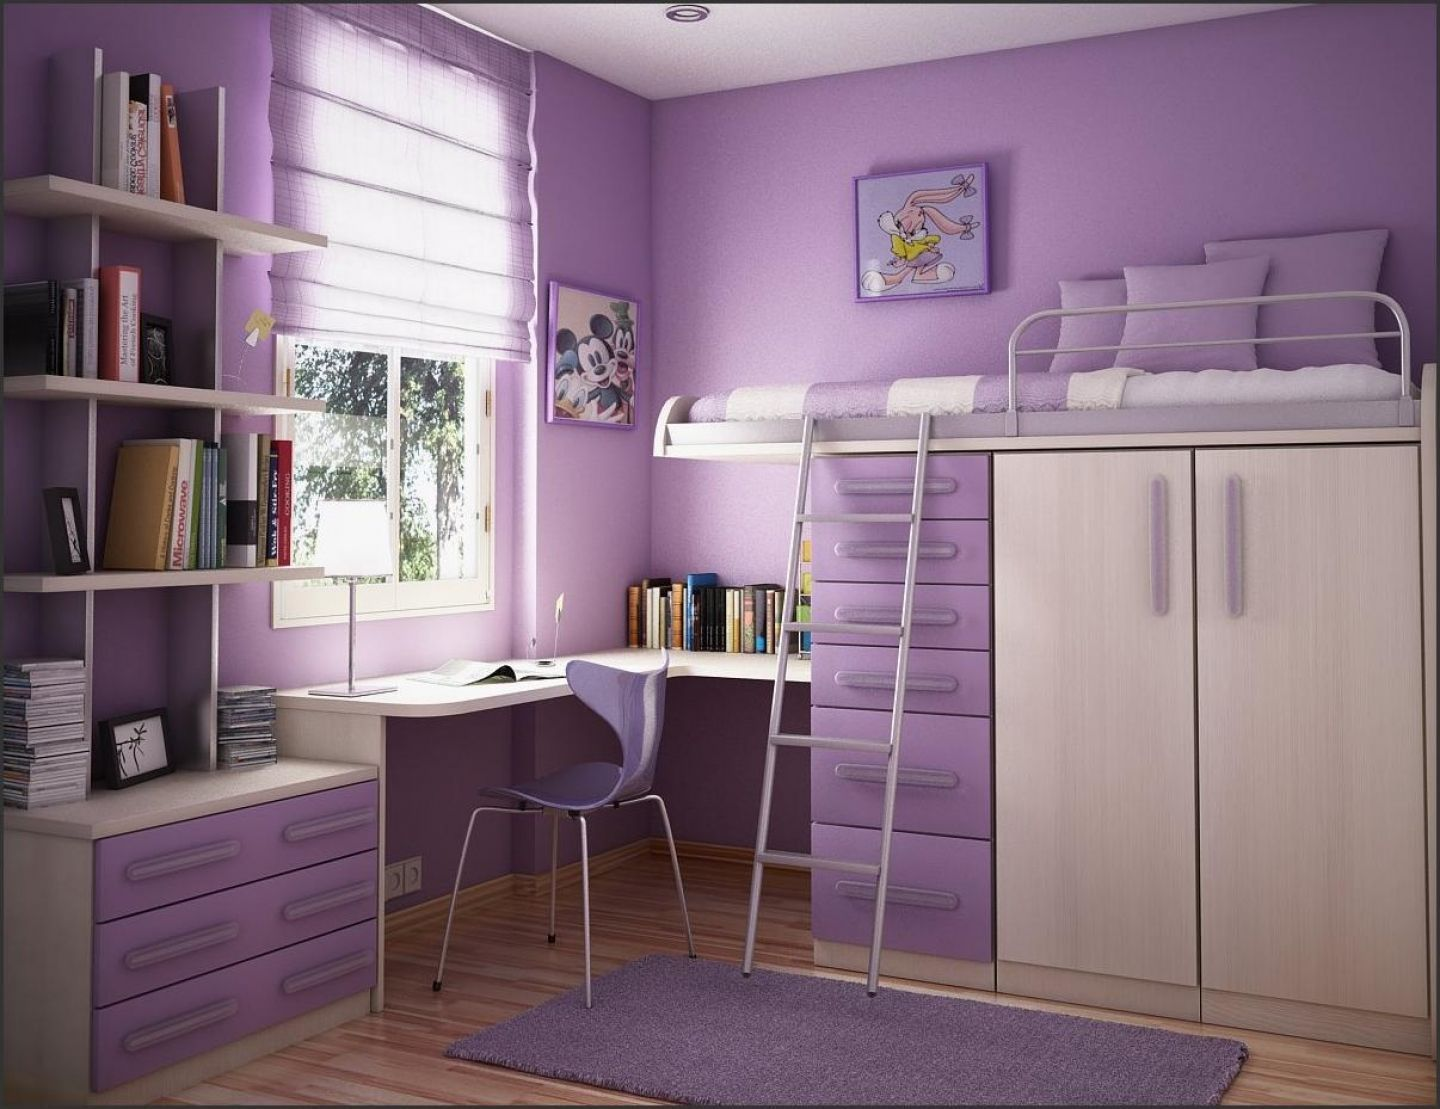 Pin On S Dream Rooms